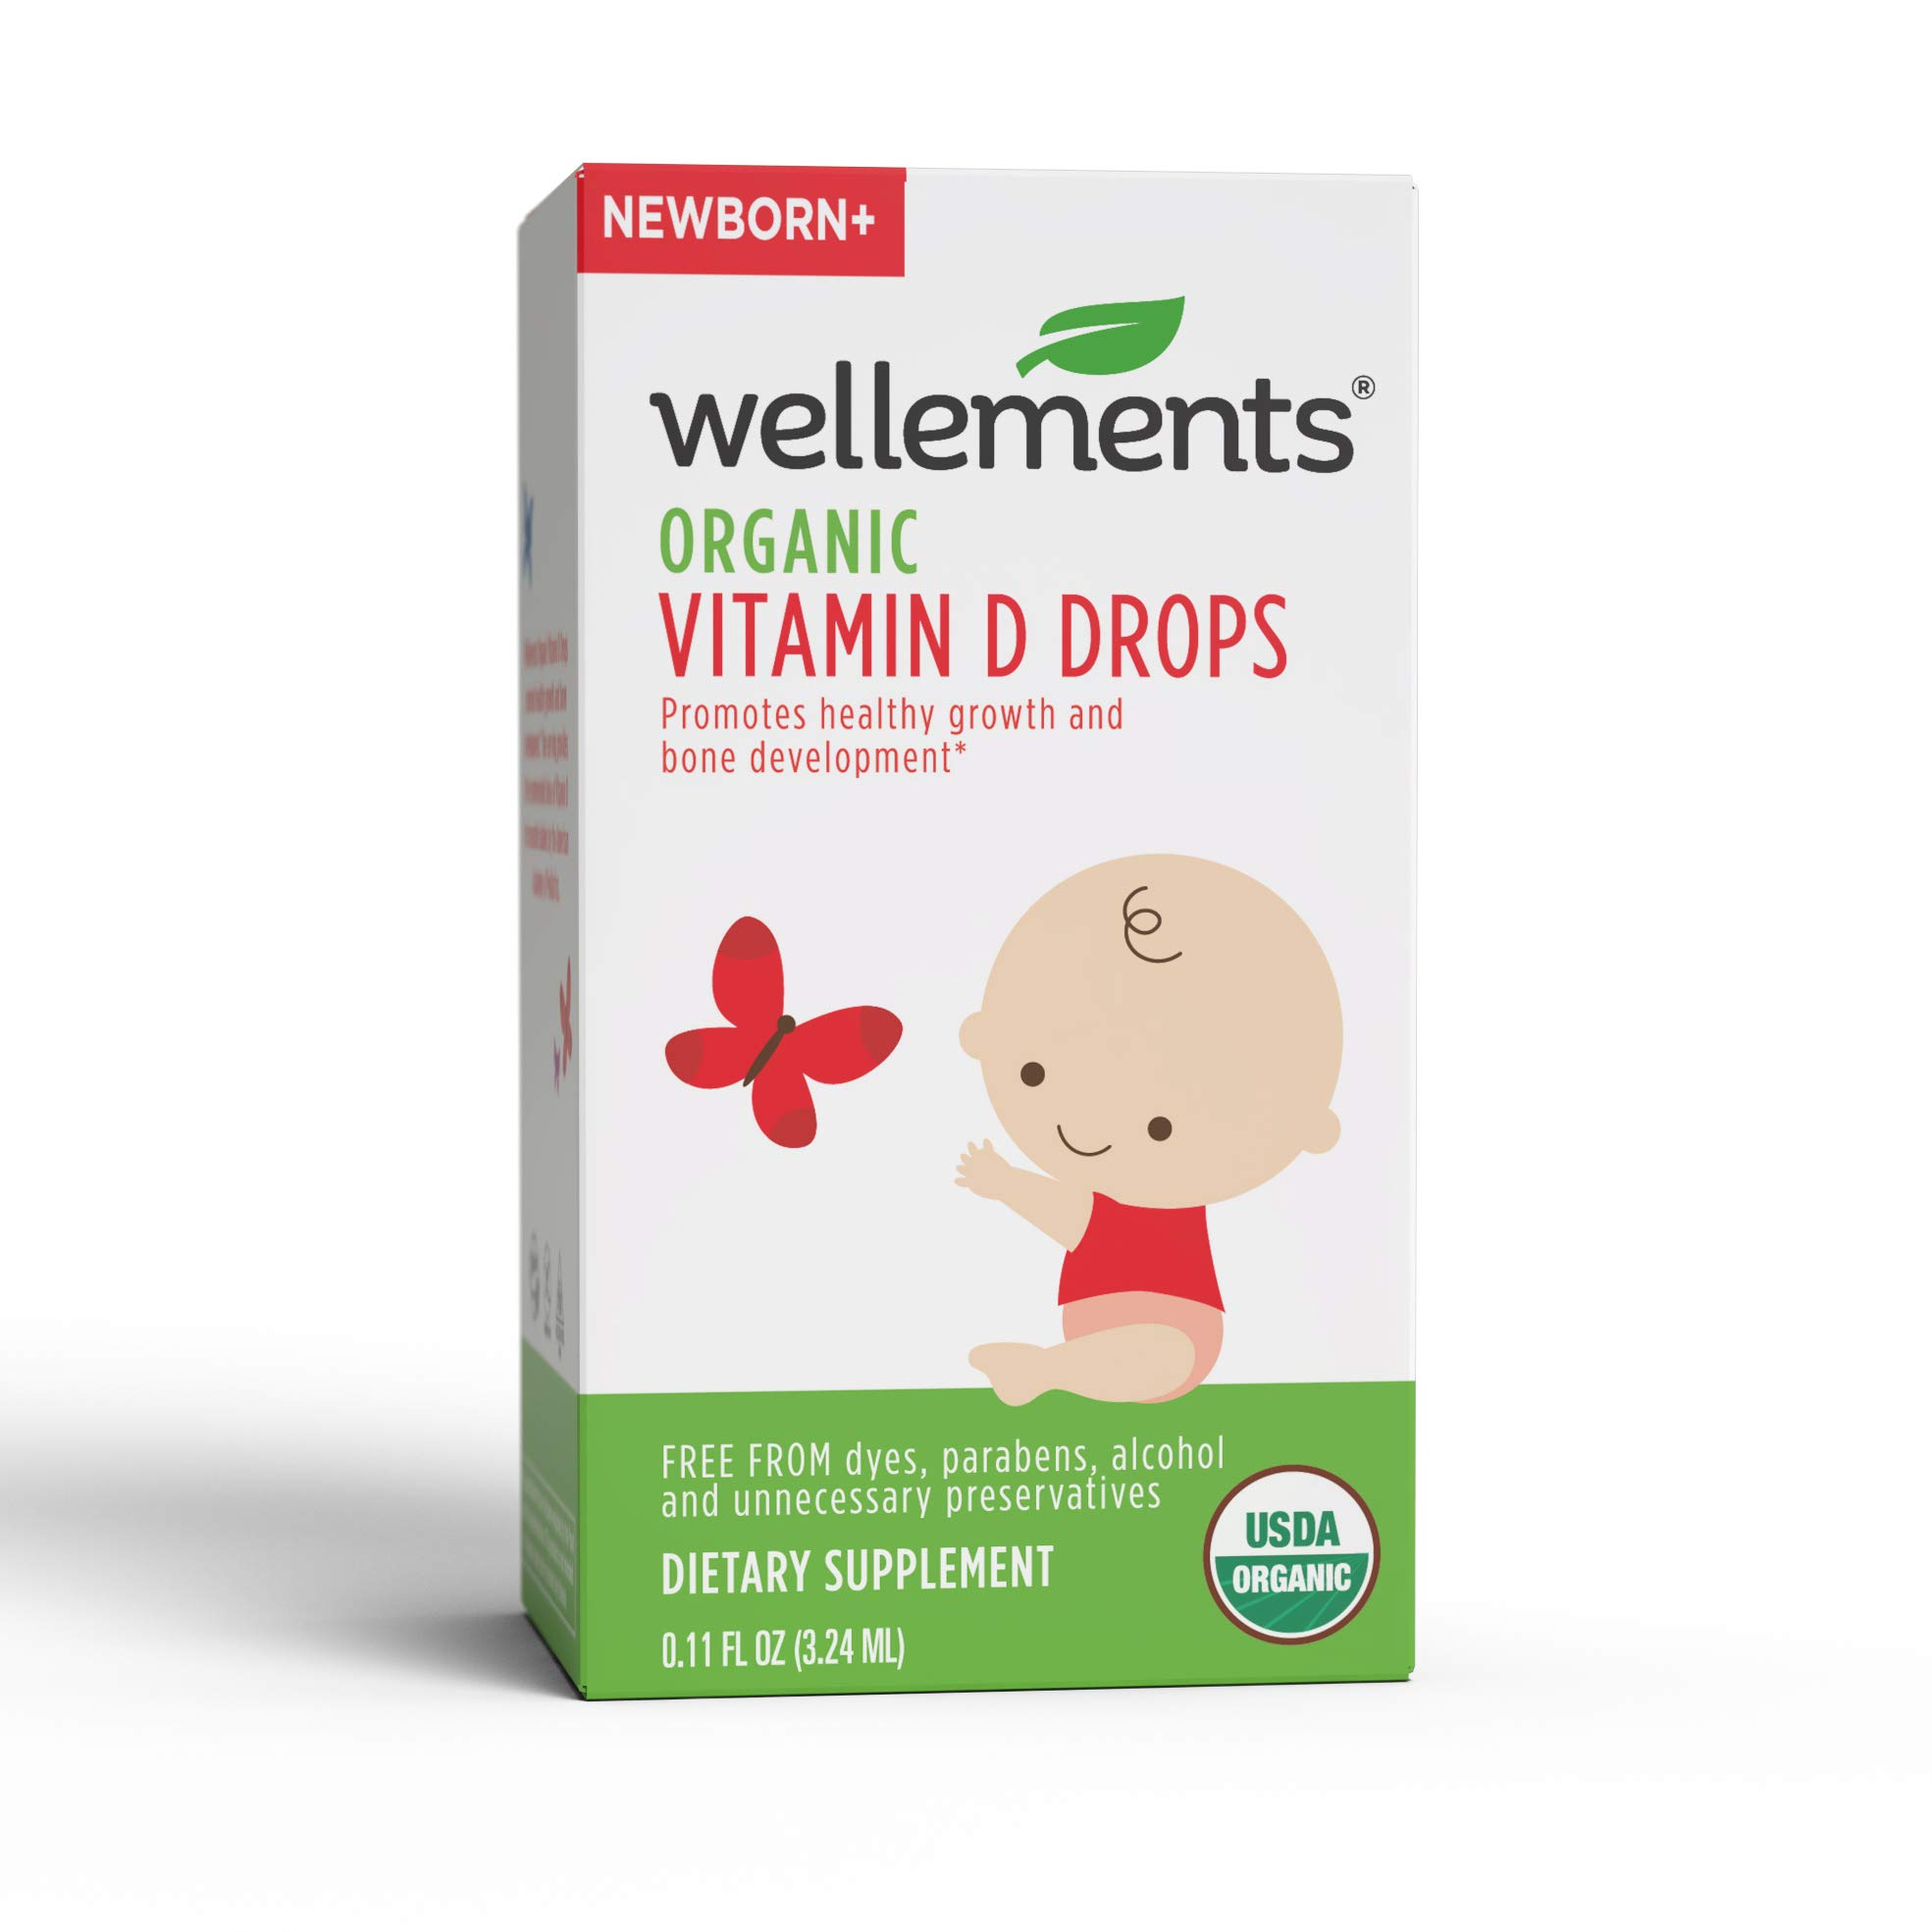 Wellements Organic Vitamin D Drops, 0.15 Fl Oz, Baby Liquid Vitamin Supplement for Infants and Toddlers, Free from Dyes, Parabens, Preservatives